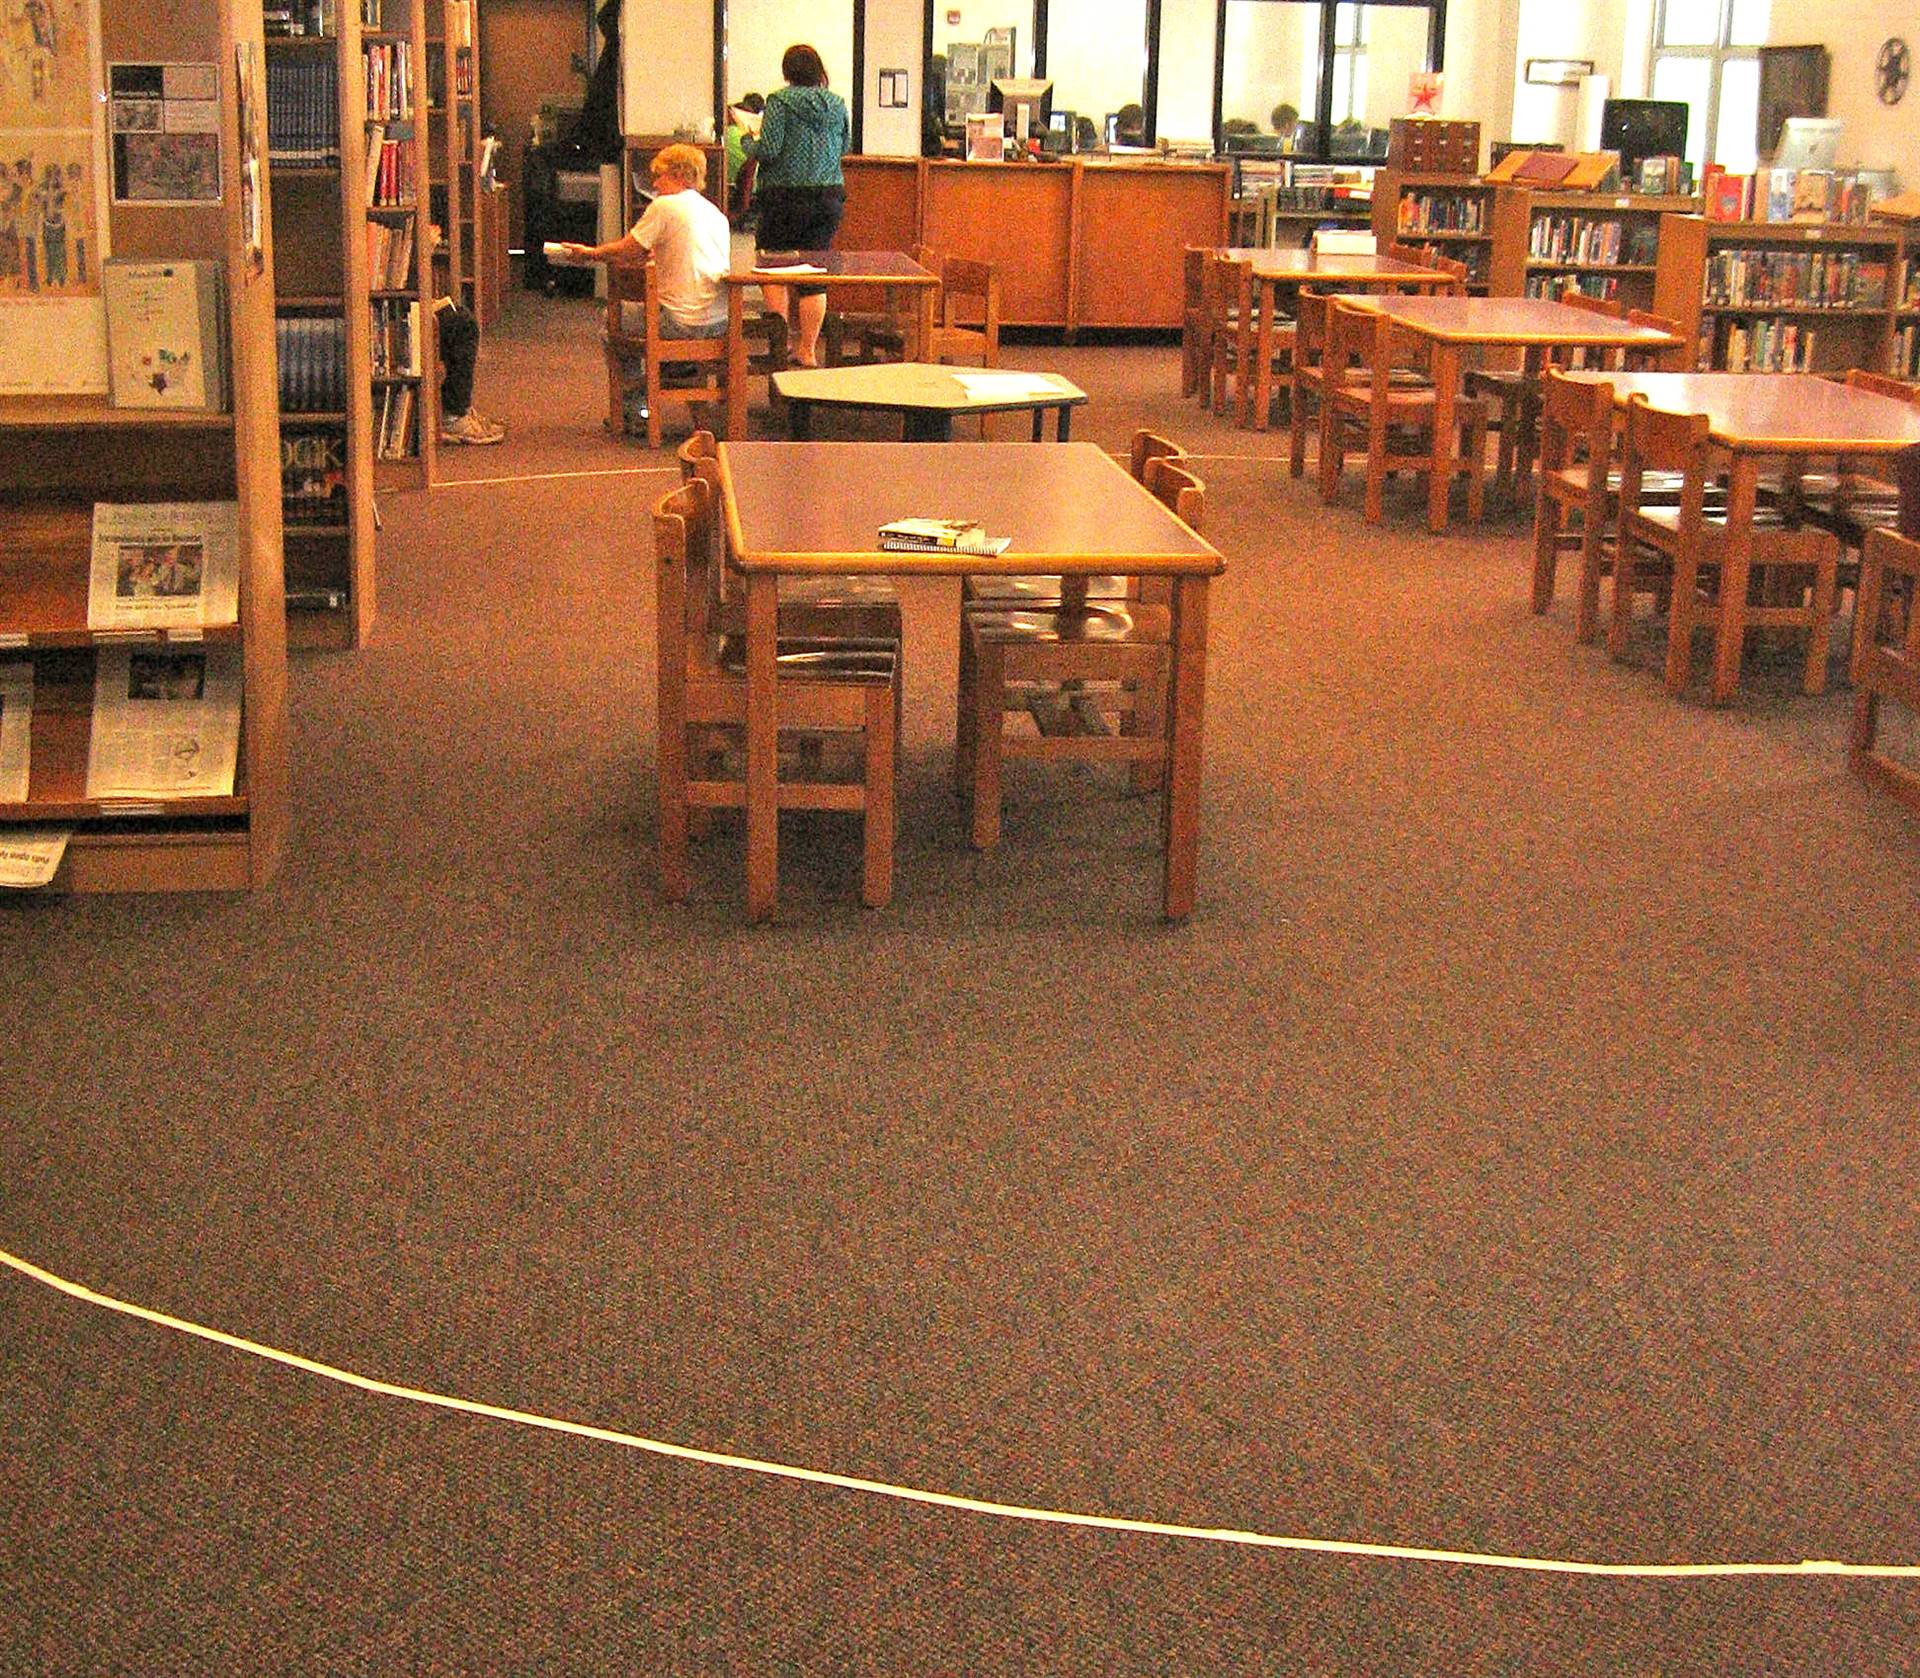 Tape on the floor inllistrating the circumference of largest redwood tree.